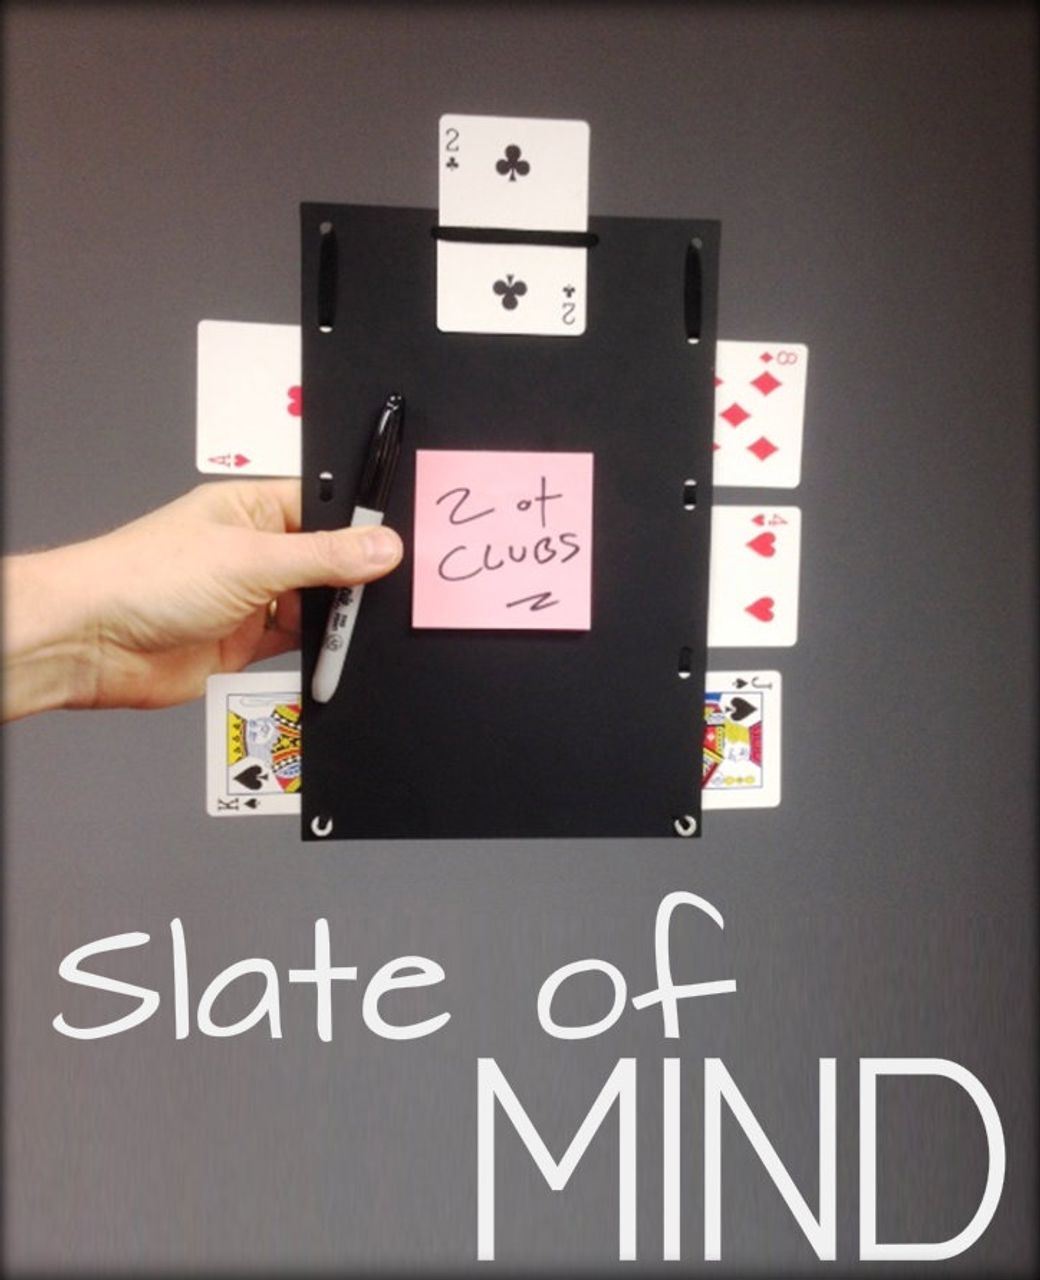 Slate of Mind - www.missionmagic.co.uk